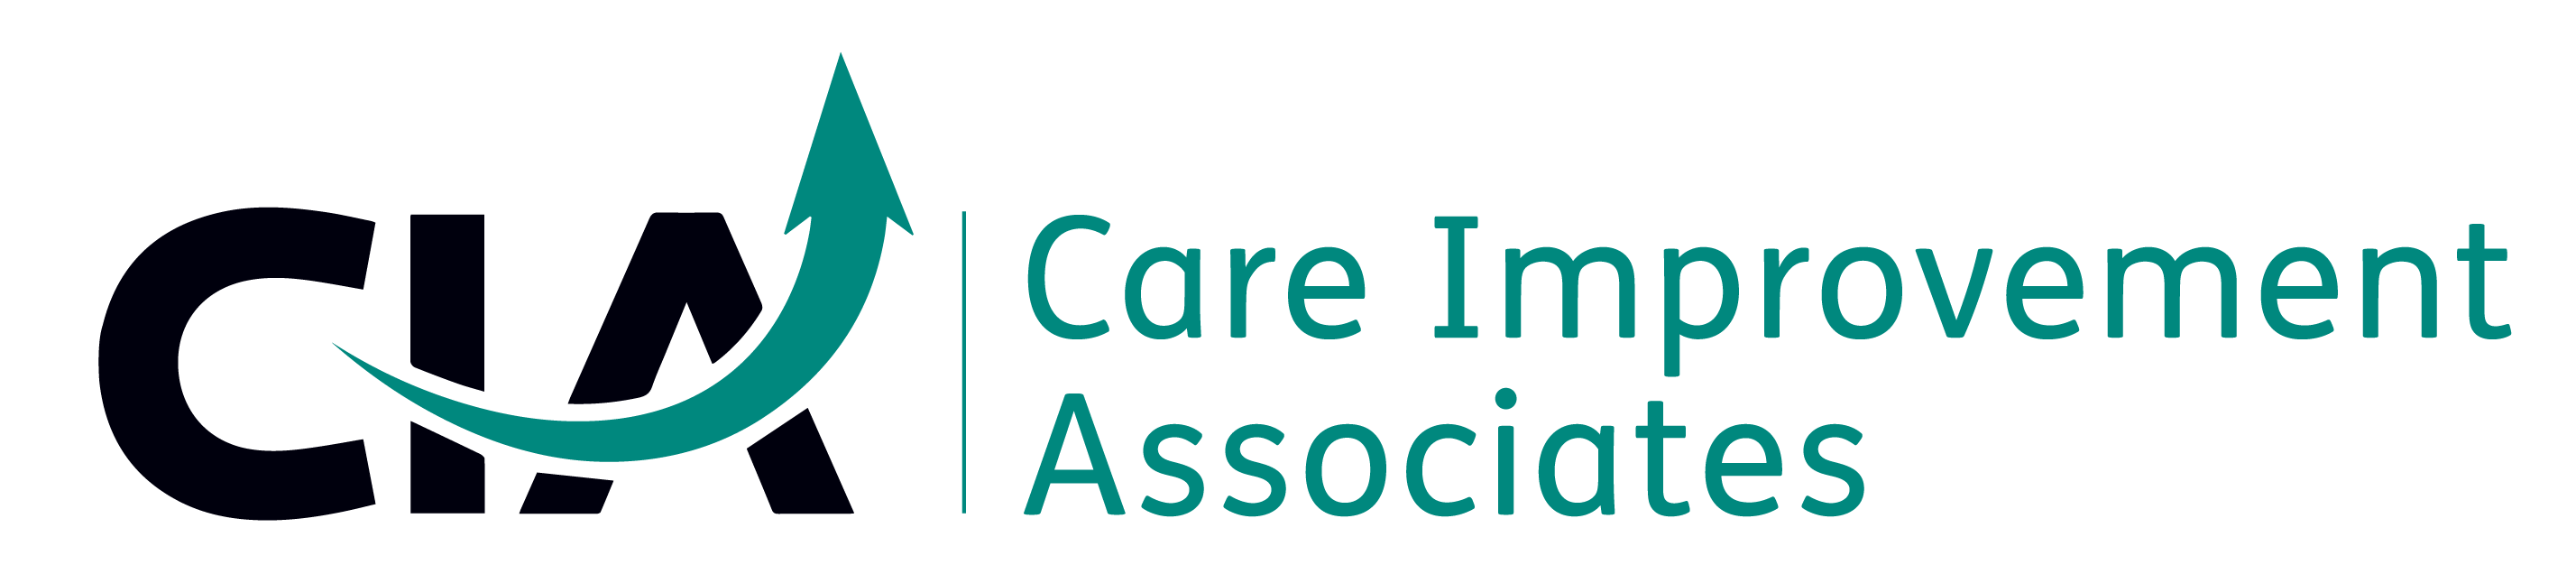 Care Improvement Associates